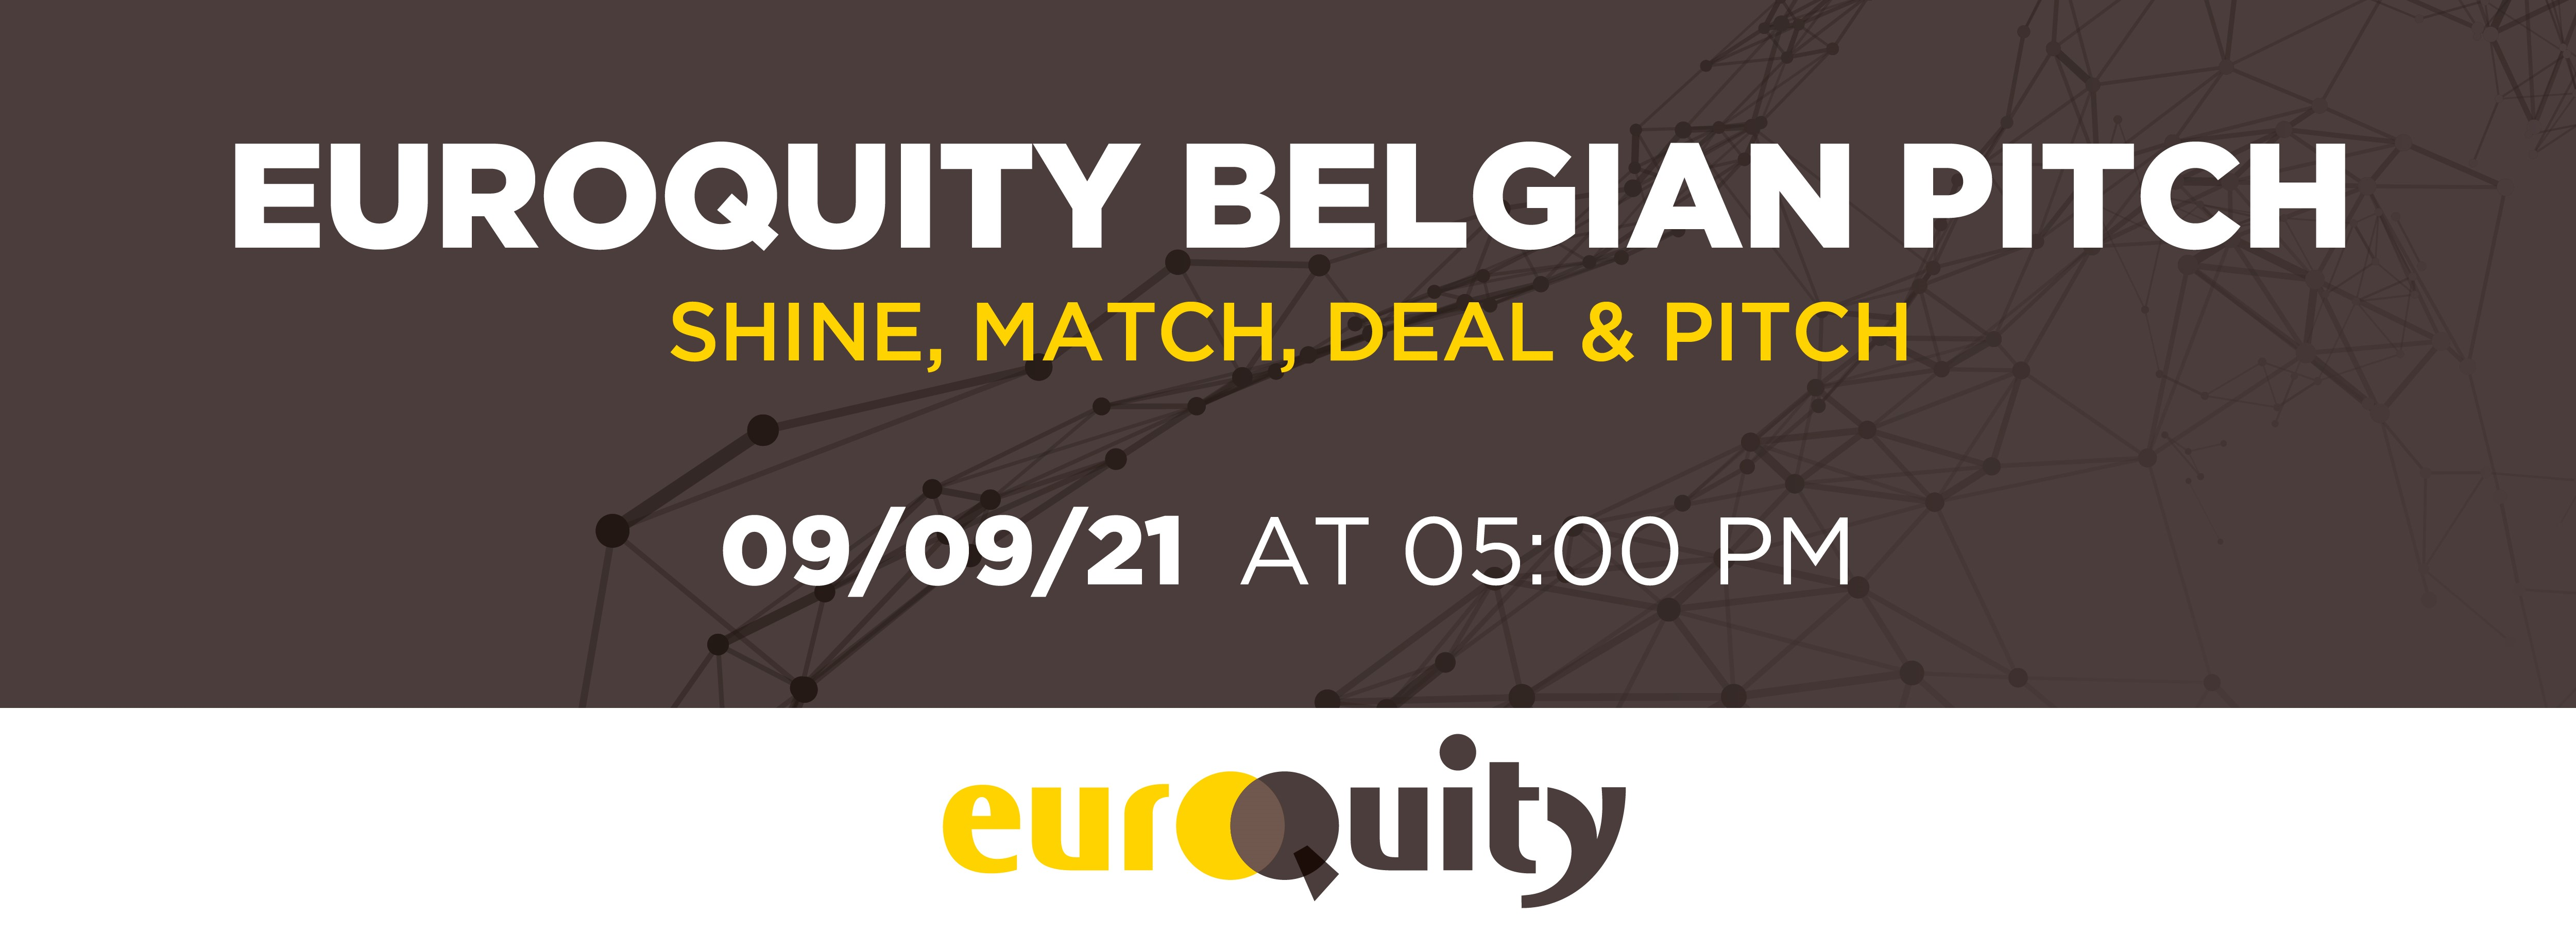 Join the next Belgian E-Pitching session on September 9th at 5:00 PM CEST